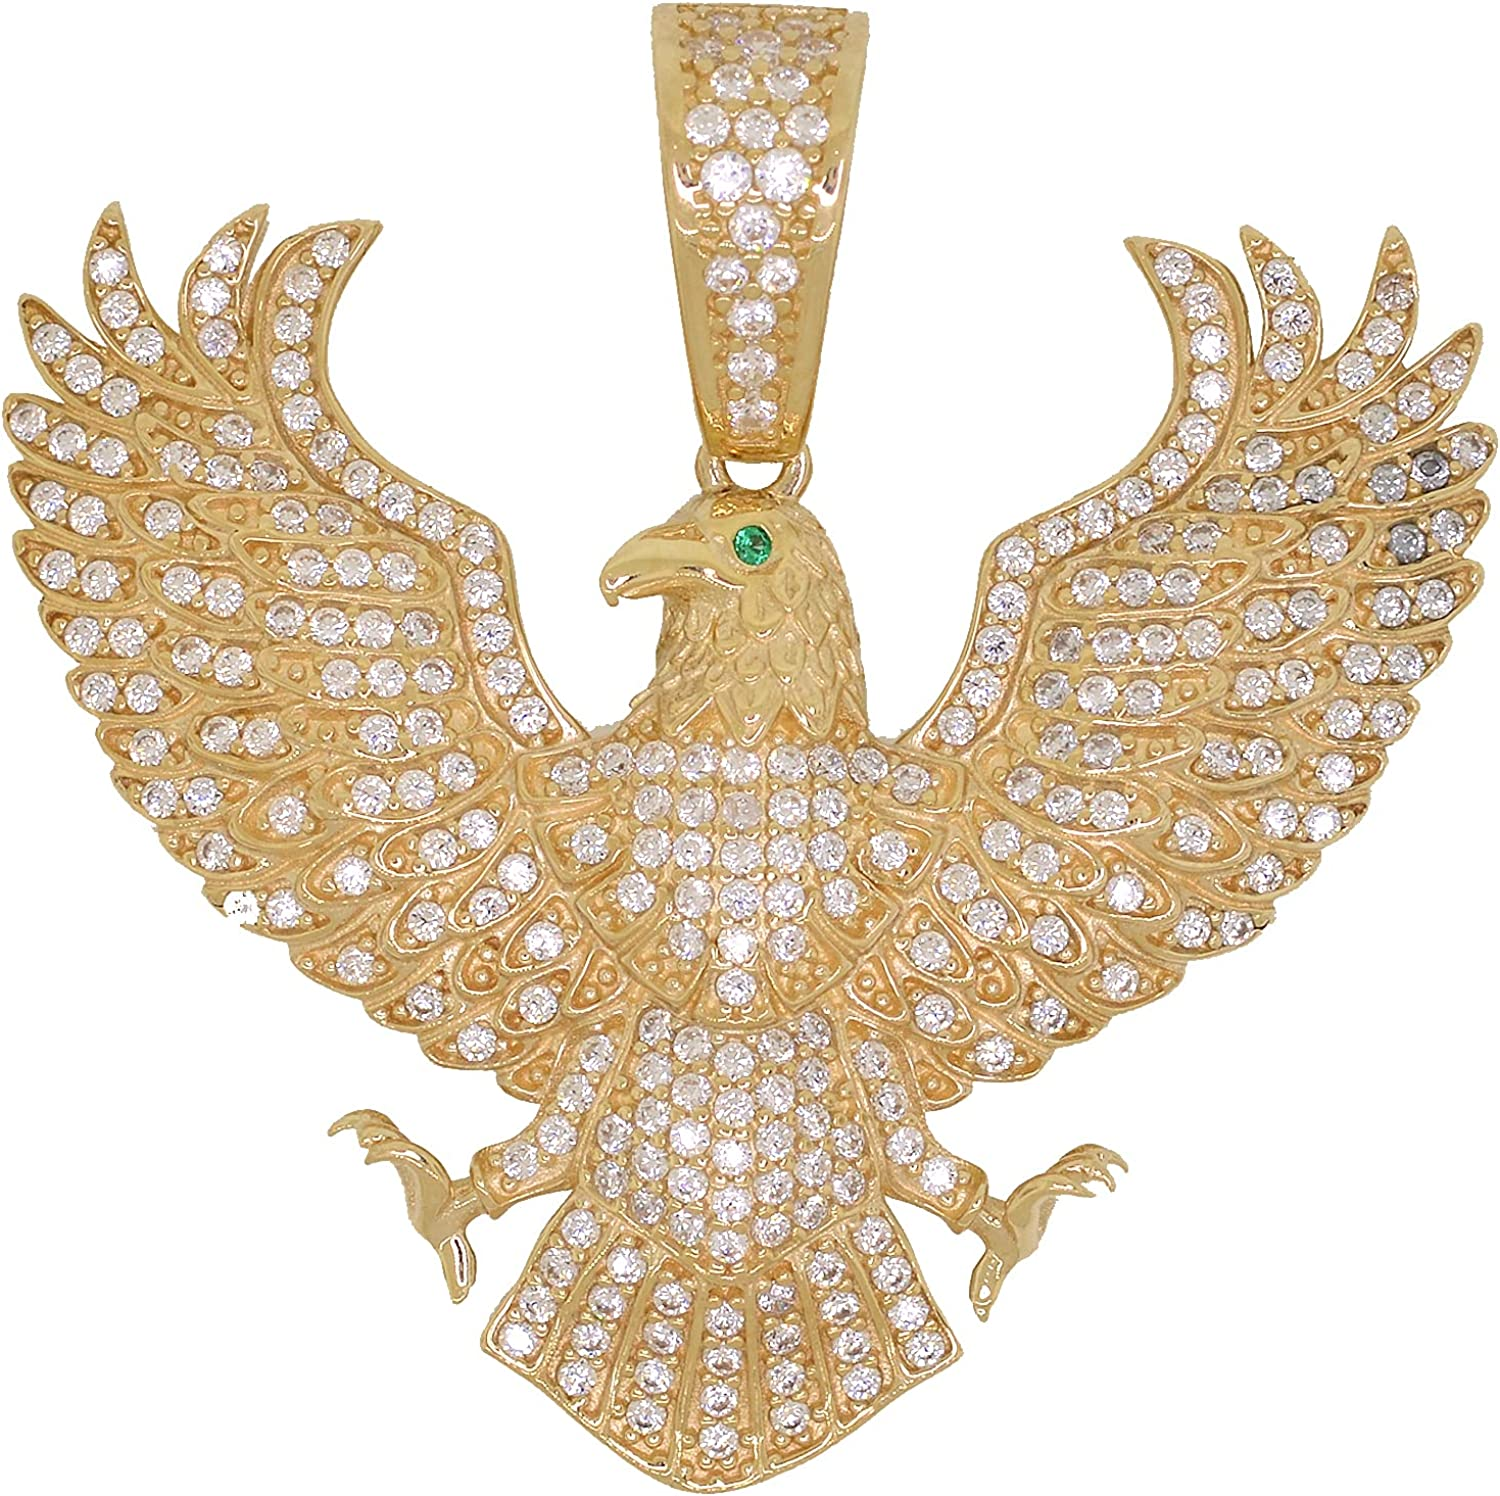 Men's 10k Gold Round Cut Cubic Zirconia Iced Out Heraldic Eagle Pendant, 1.70